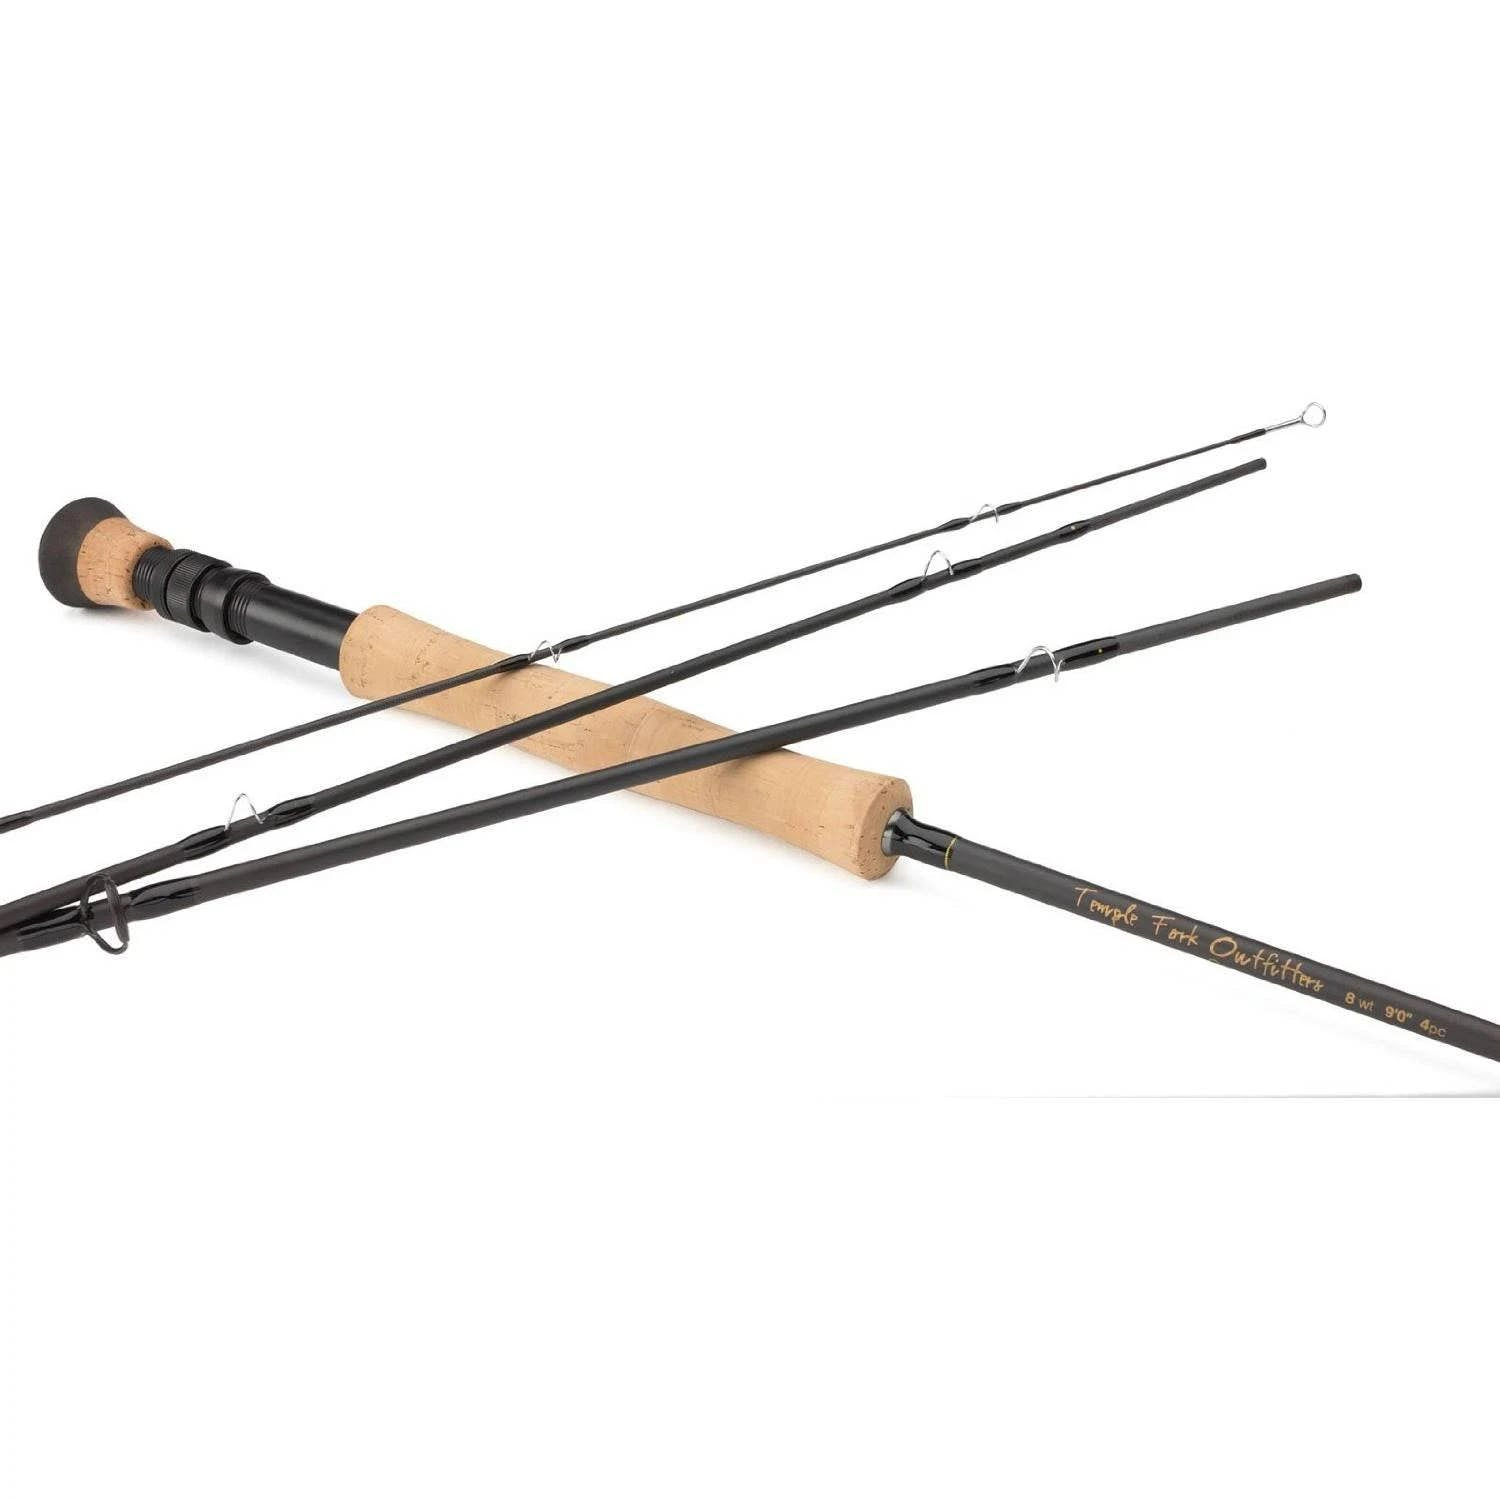 TFO Professional Series II Fly Rods 9' 7wt 4pc